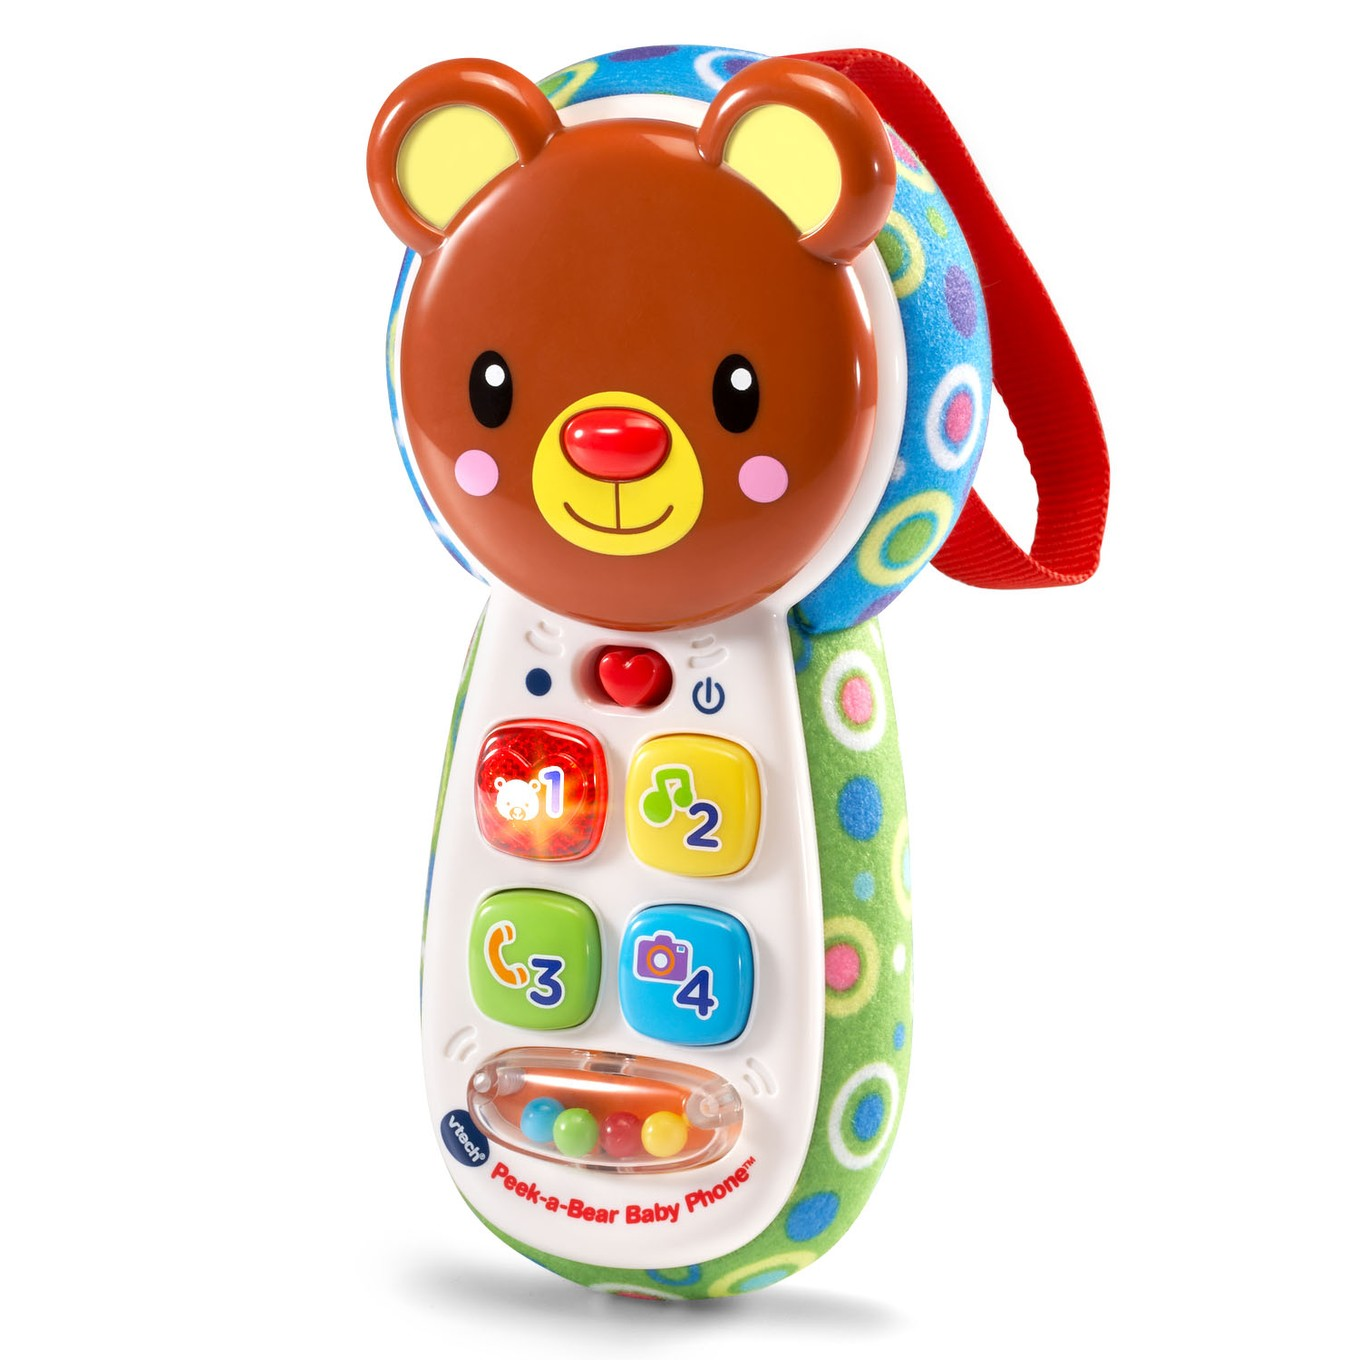 Peek A Bear Baby Phone │ Vtech 174